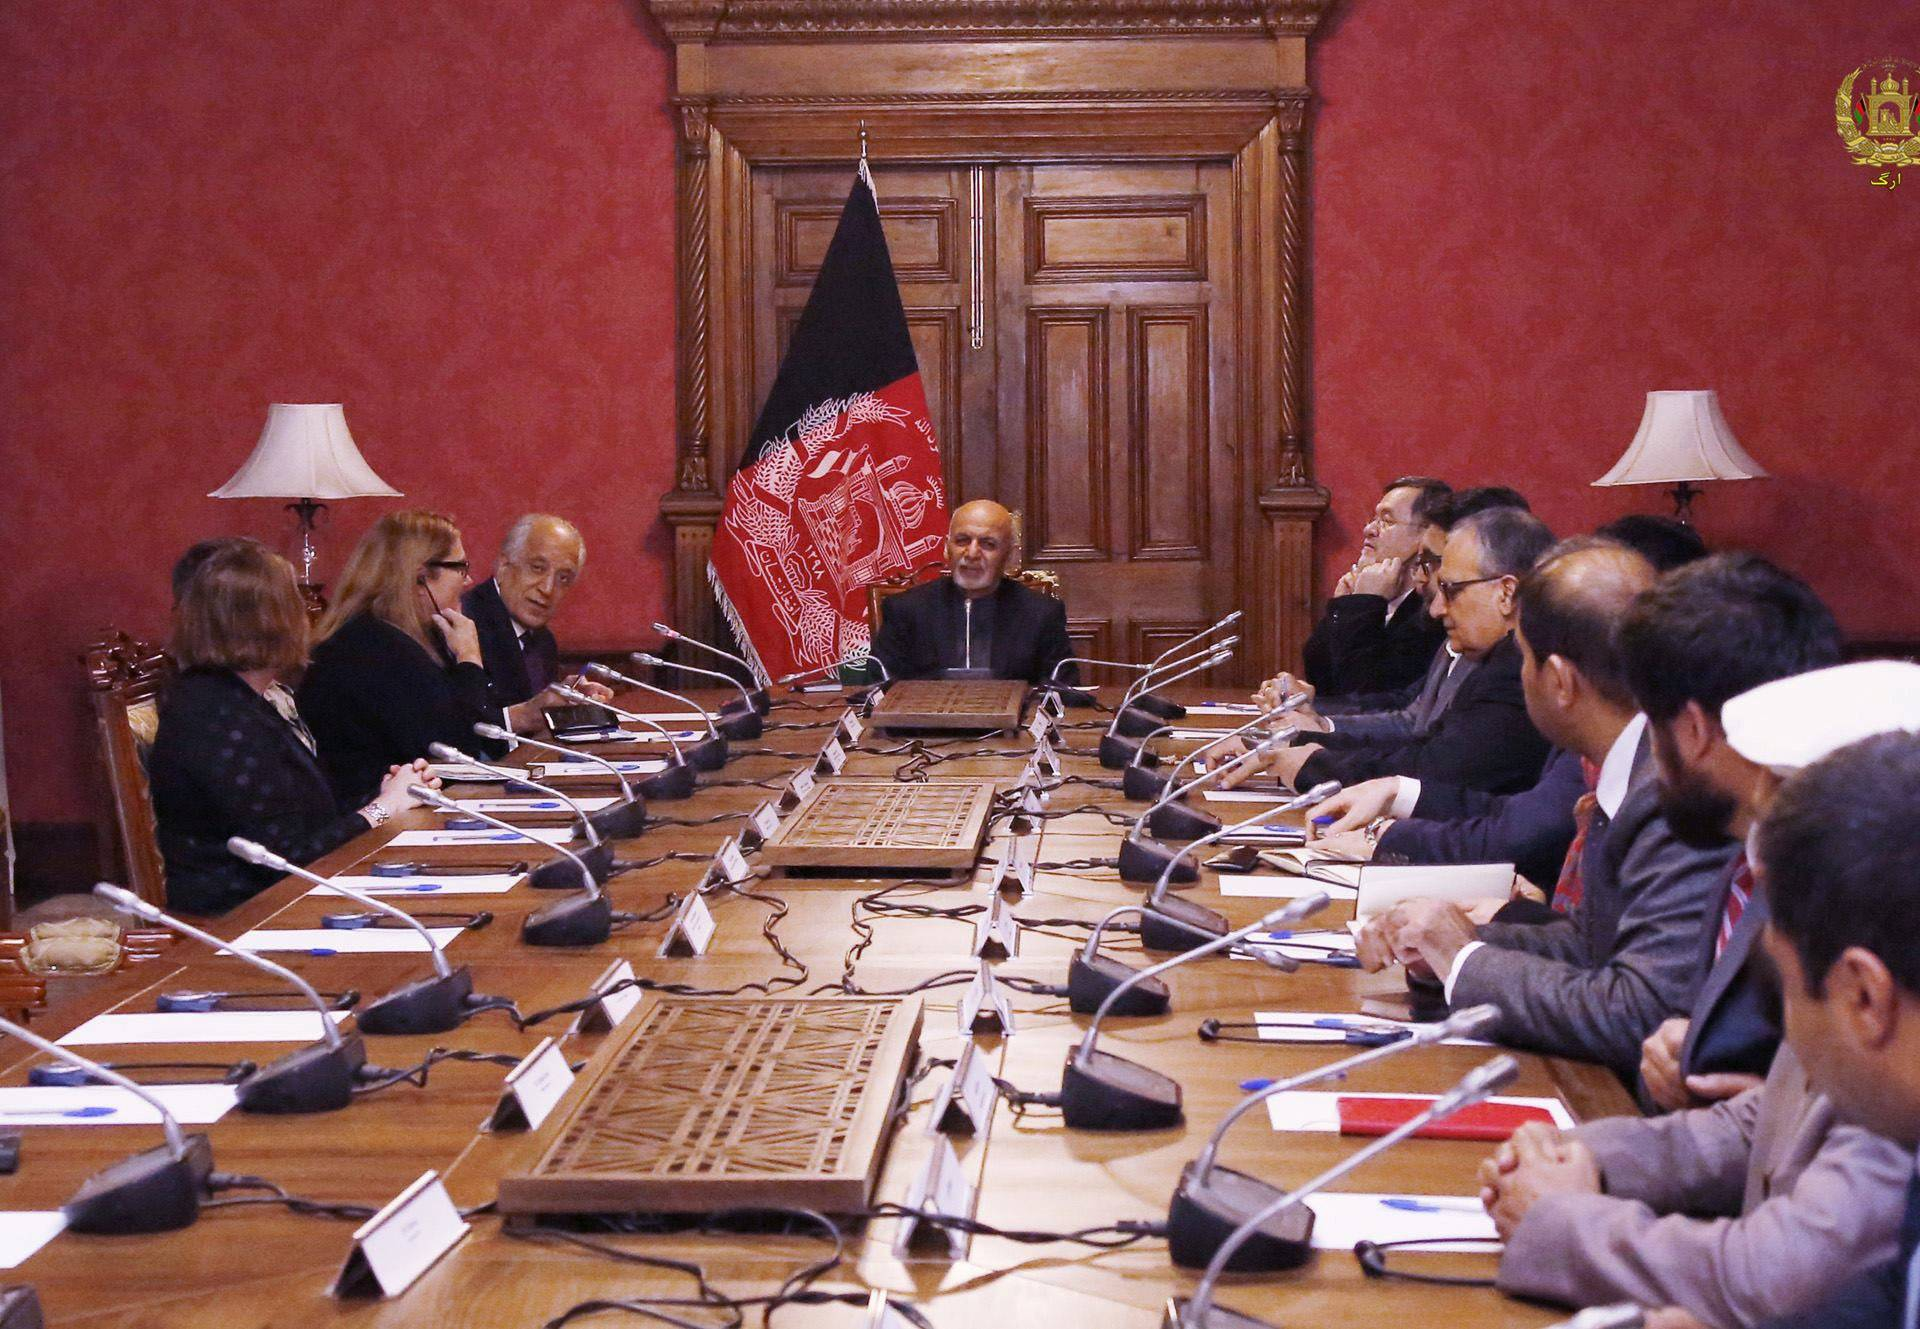 Afghanistan's President Ashraf Ghani talks with the U.S. special envoy for peace in Afghanistan, Zalmay Khalilzad, during a meeting in Kabul